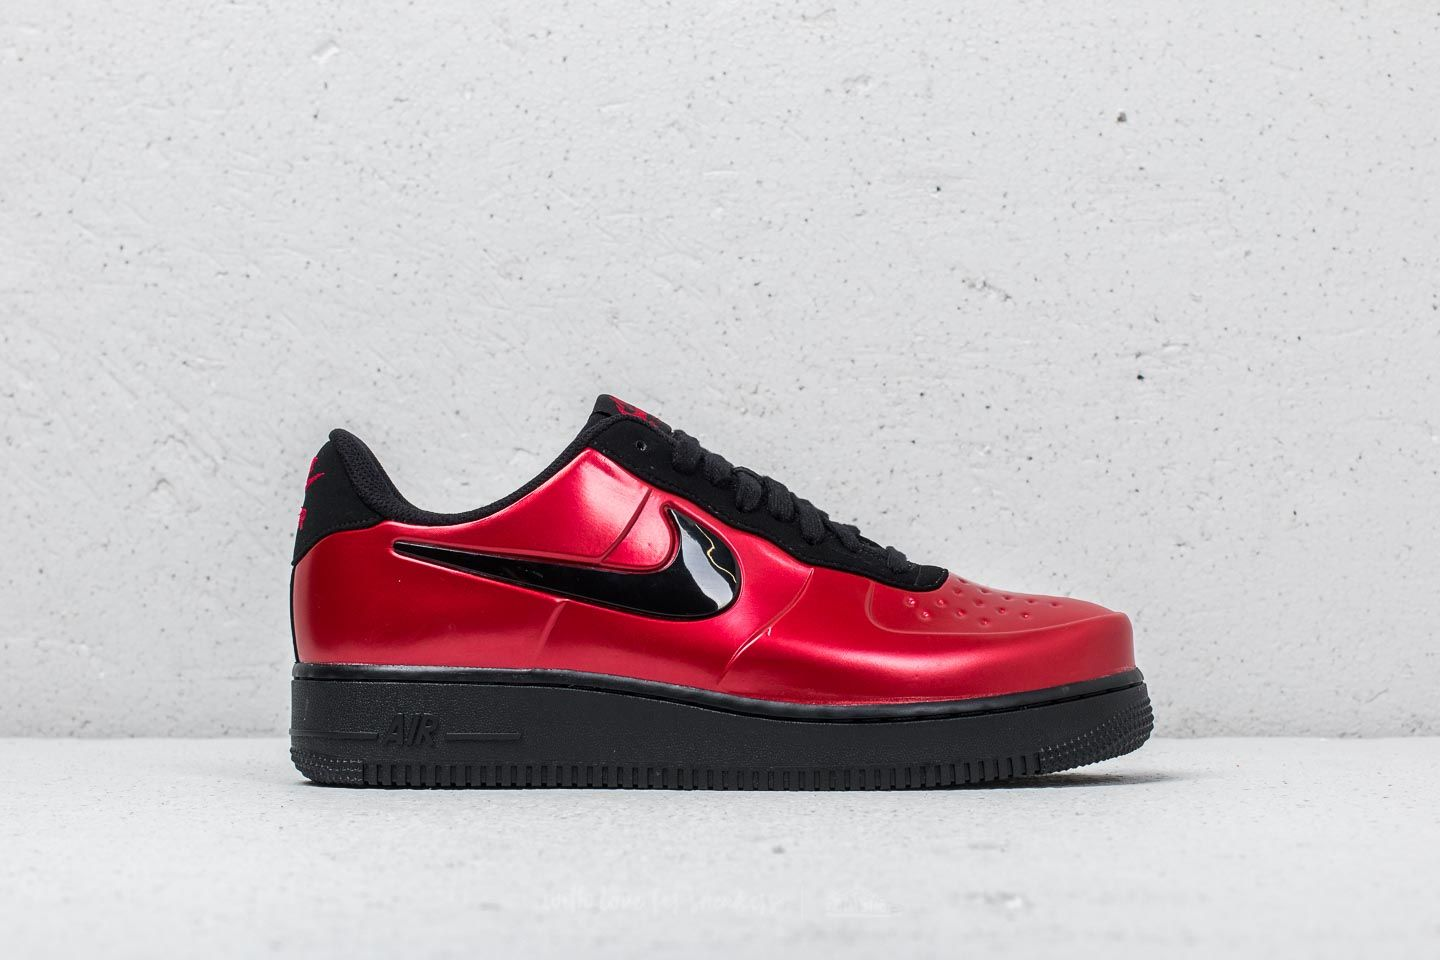 Nike Air Force 1 Foamposite Pro Cup Gym Red Black | Footshop